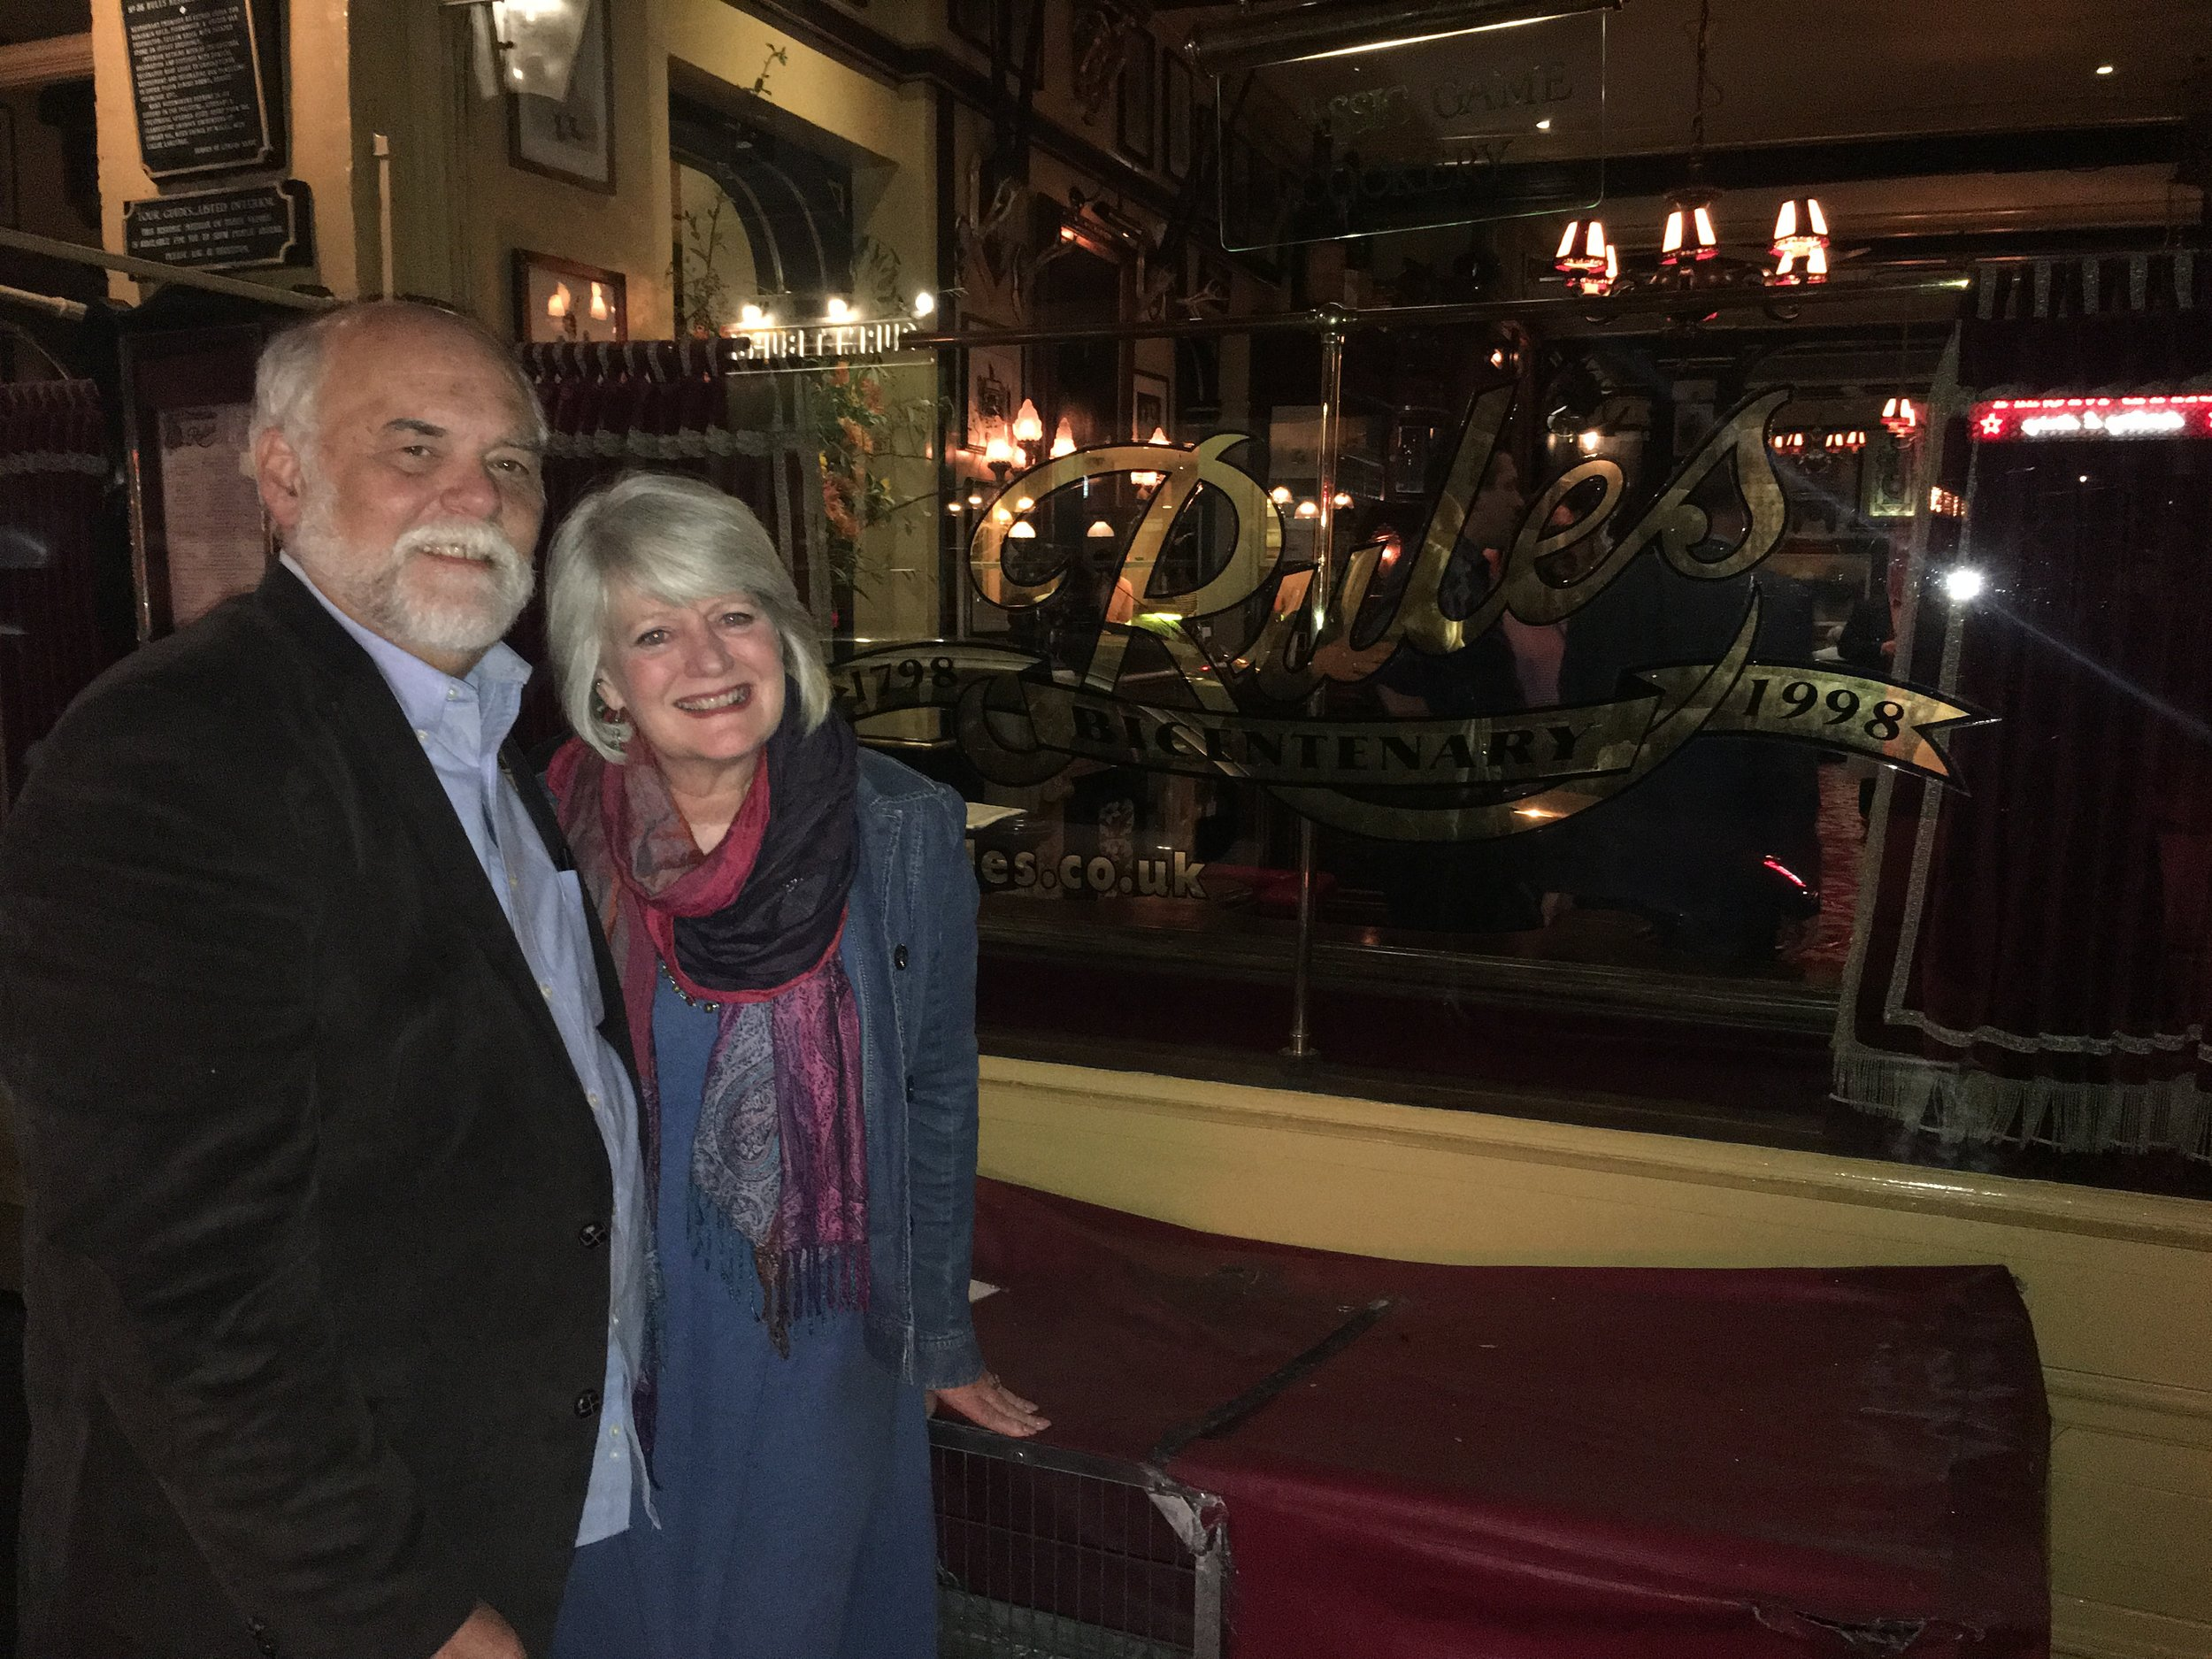 We recently celebrated our 35th wedding anniversary! Can't believe we have passed that many years together!